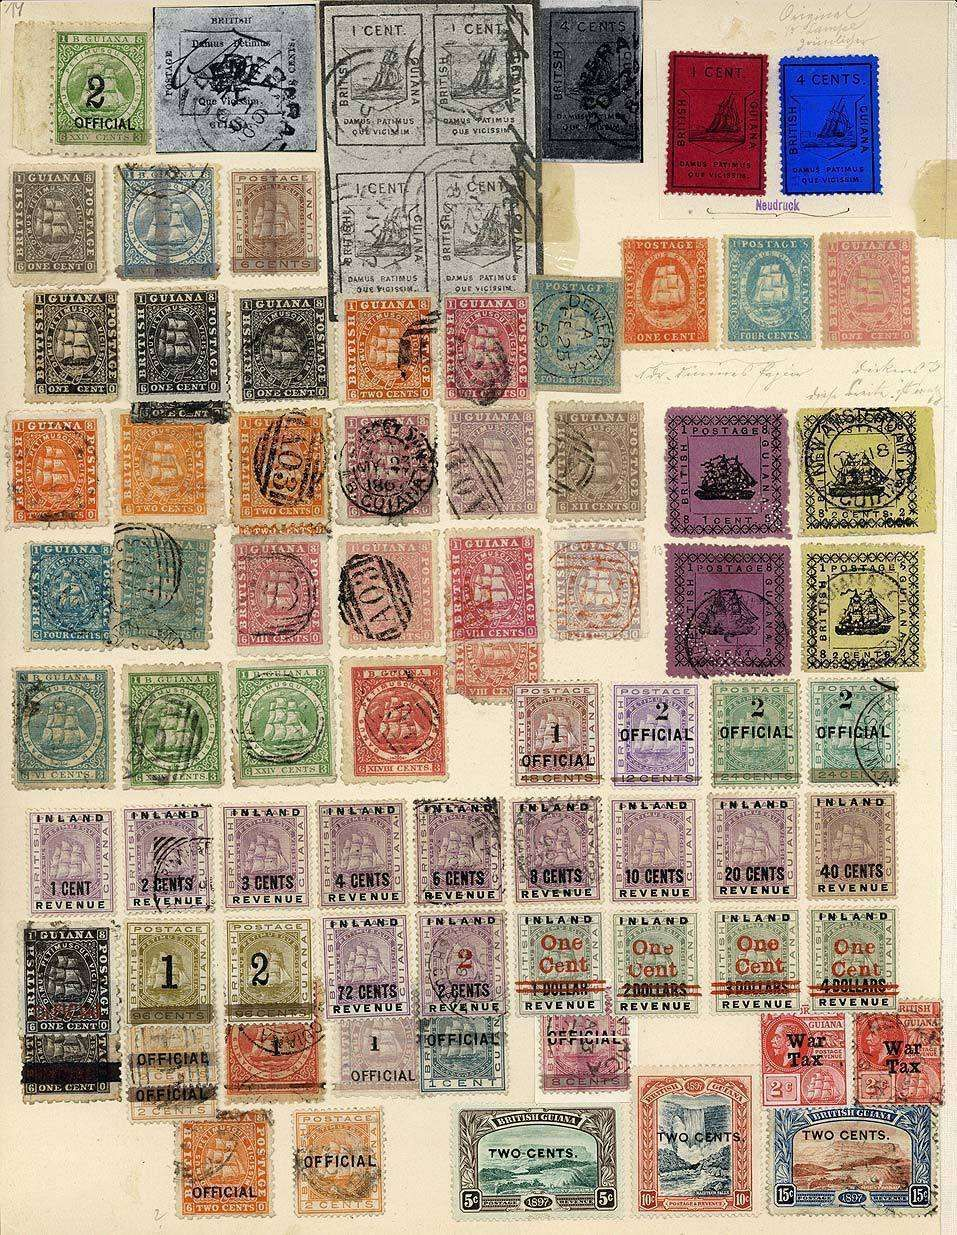 """BRITISH Guiana: approximate 1853 - 1930, interesting part of a collection from the ship issues, """"SANDBACH""""- Emissionen in different types, A..."""